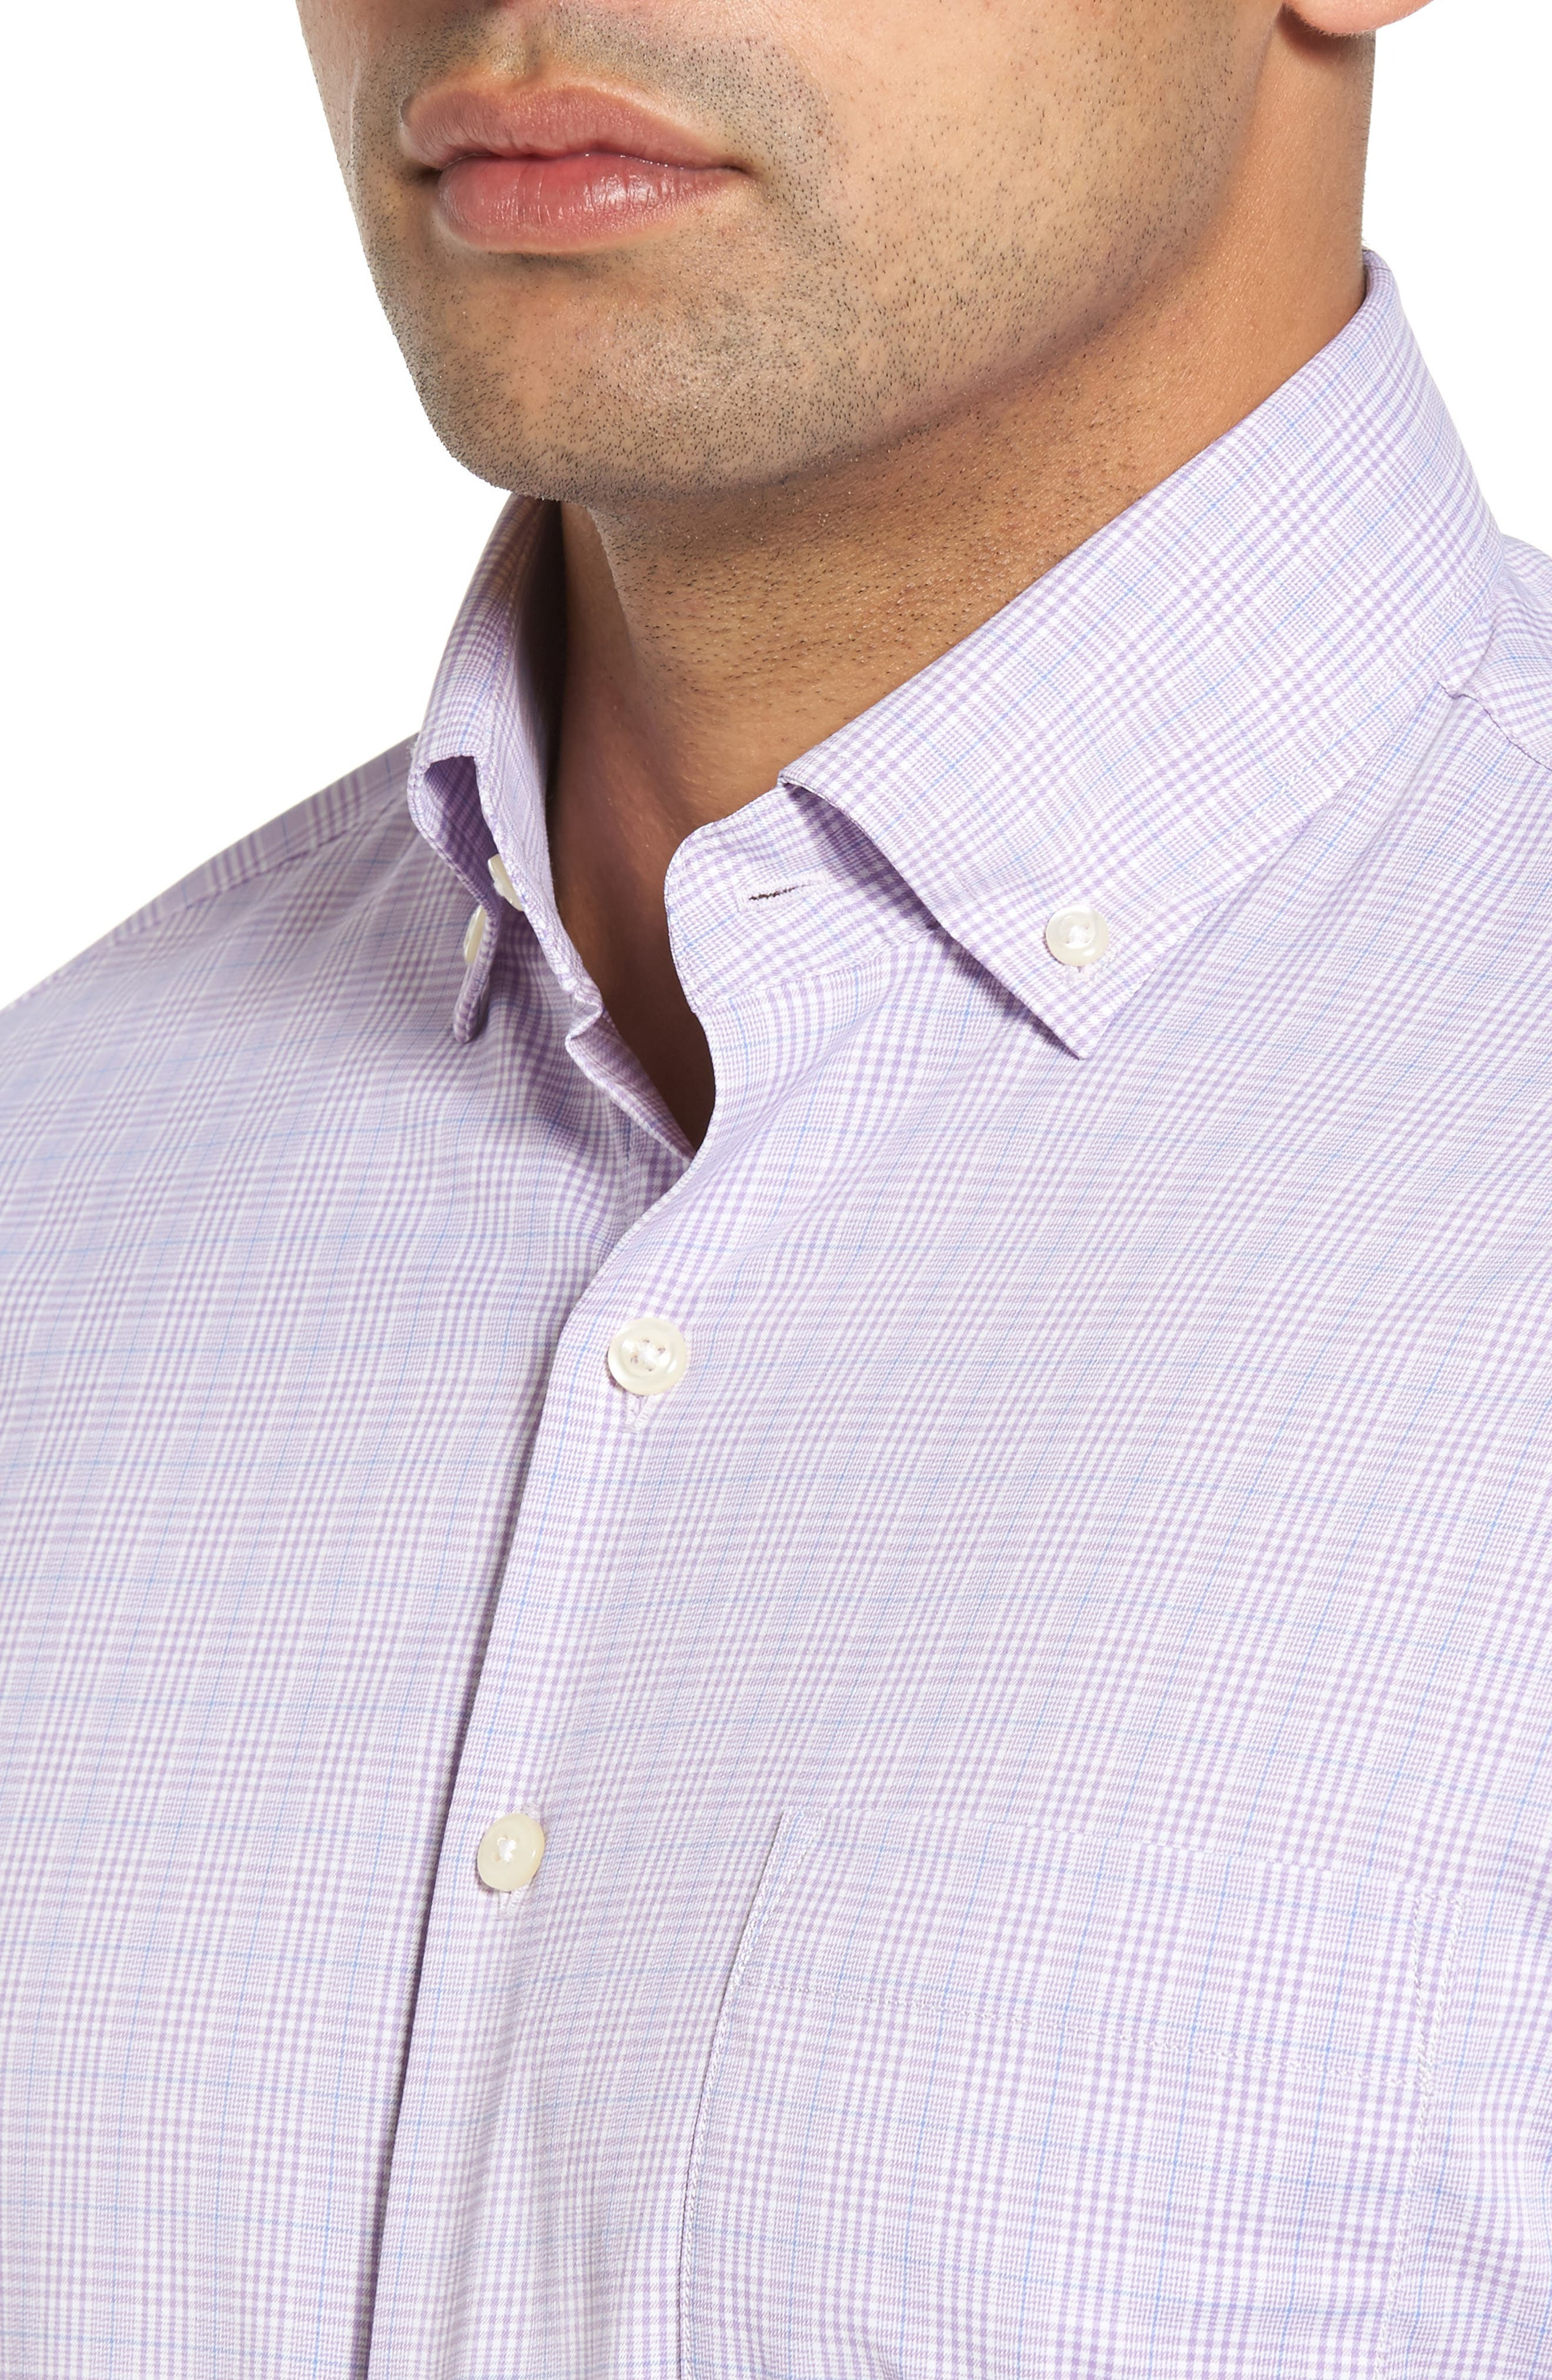 McConnell Plaid Regular Fit Performance Sport Shirt,                             Alternate thumbnail 4, color,